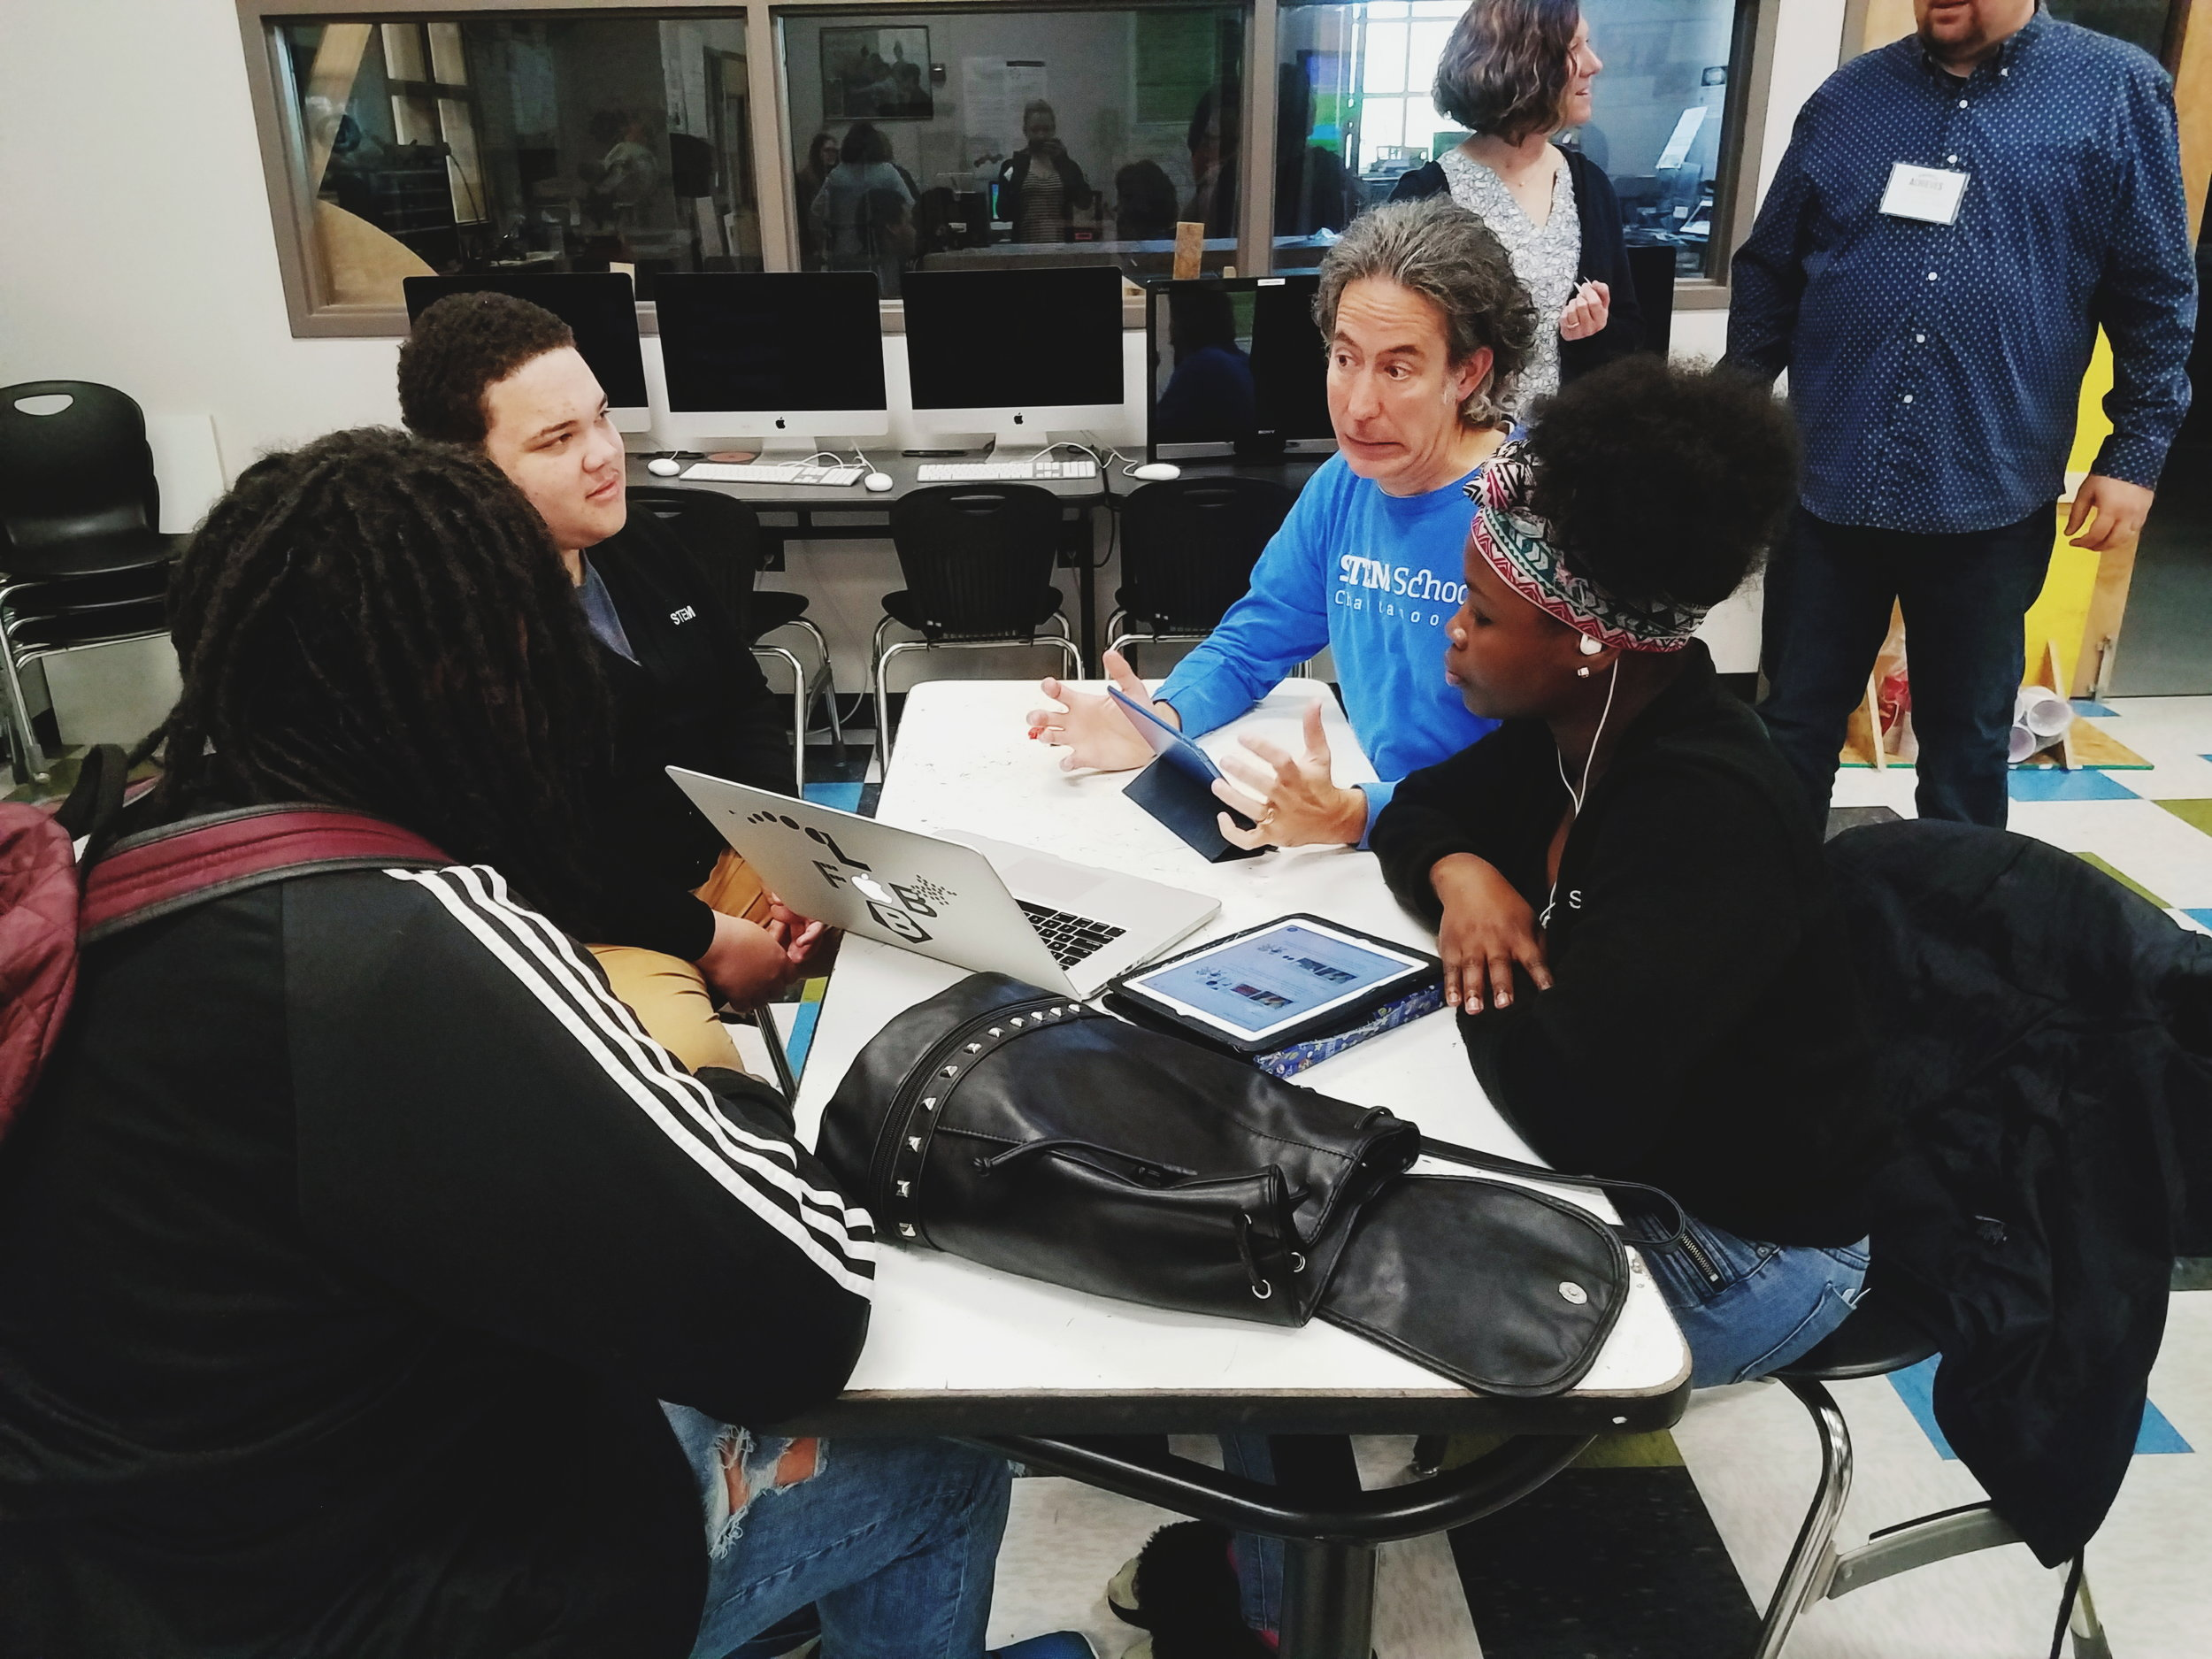 A teacher at STEM School Chattanooga offers insights and support to students on their group project.